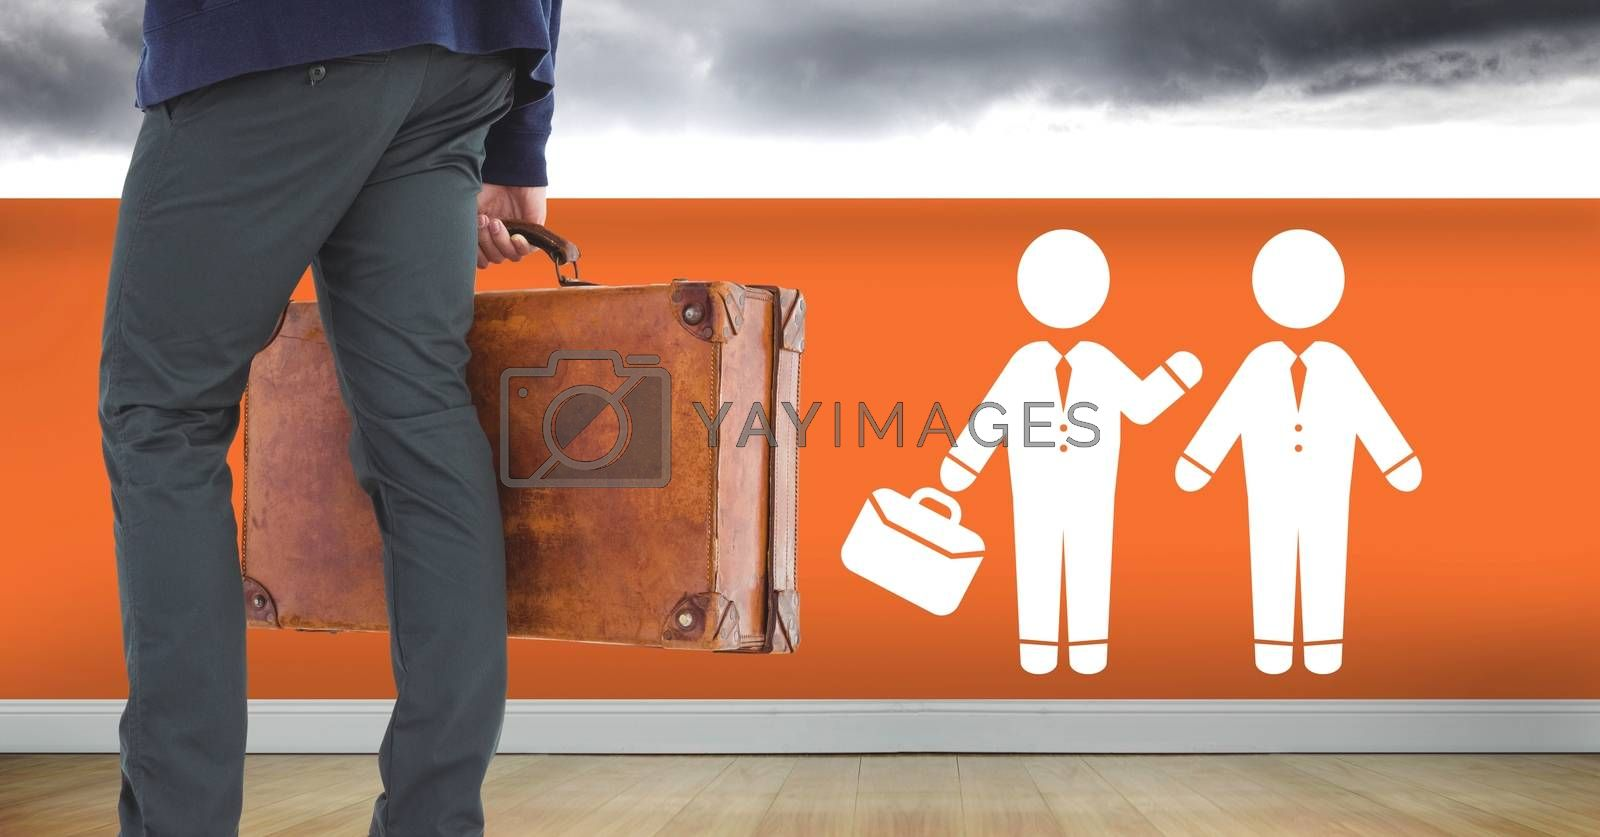 Digital composite of Businessman with briefcase and people meeting icon on wall